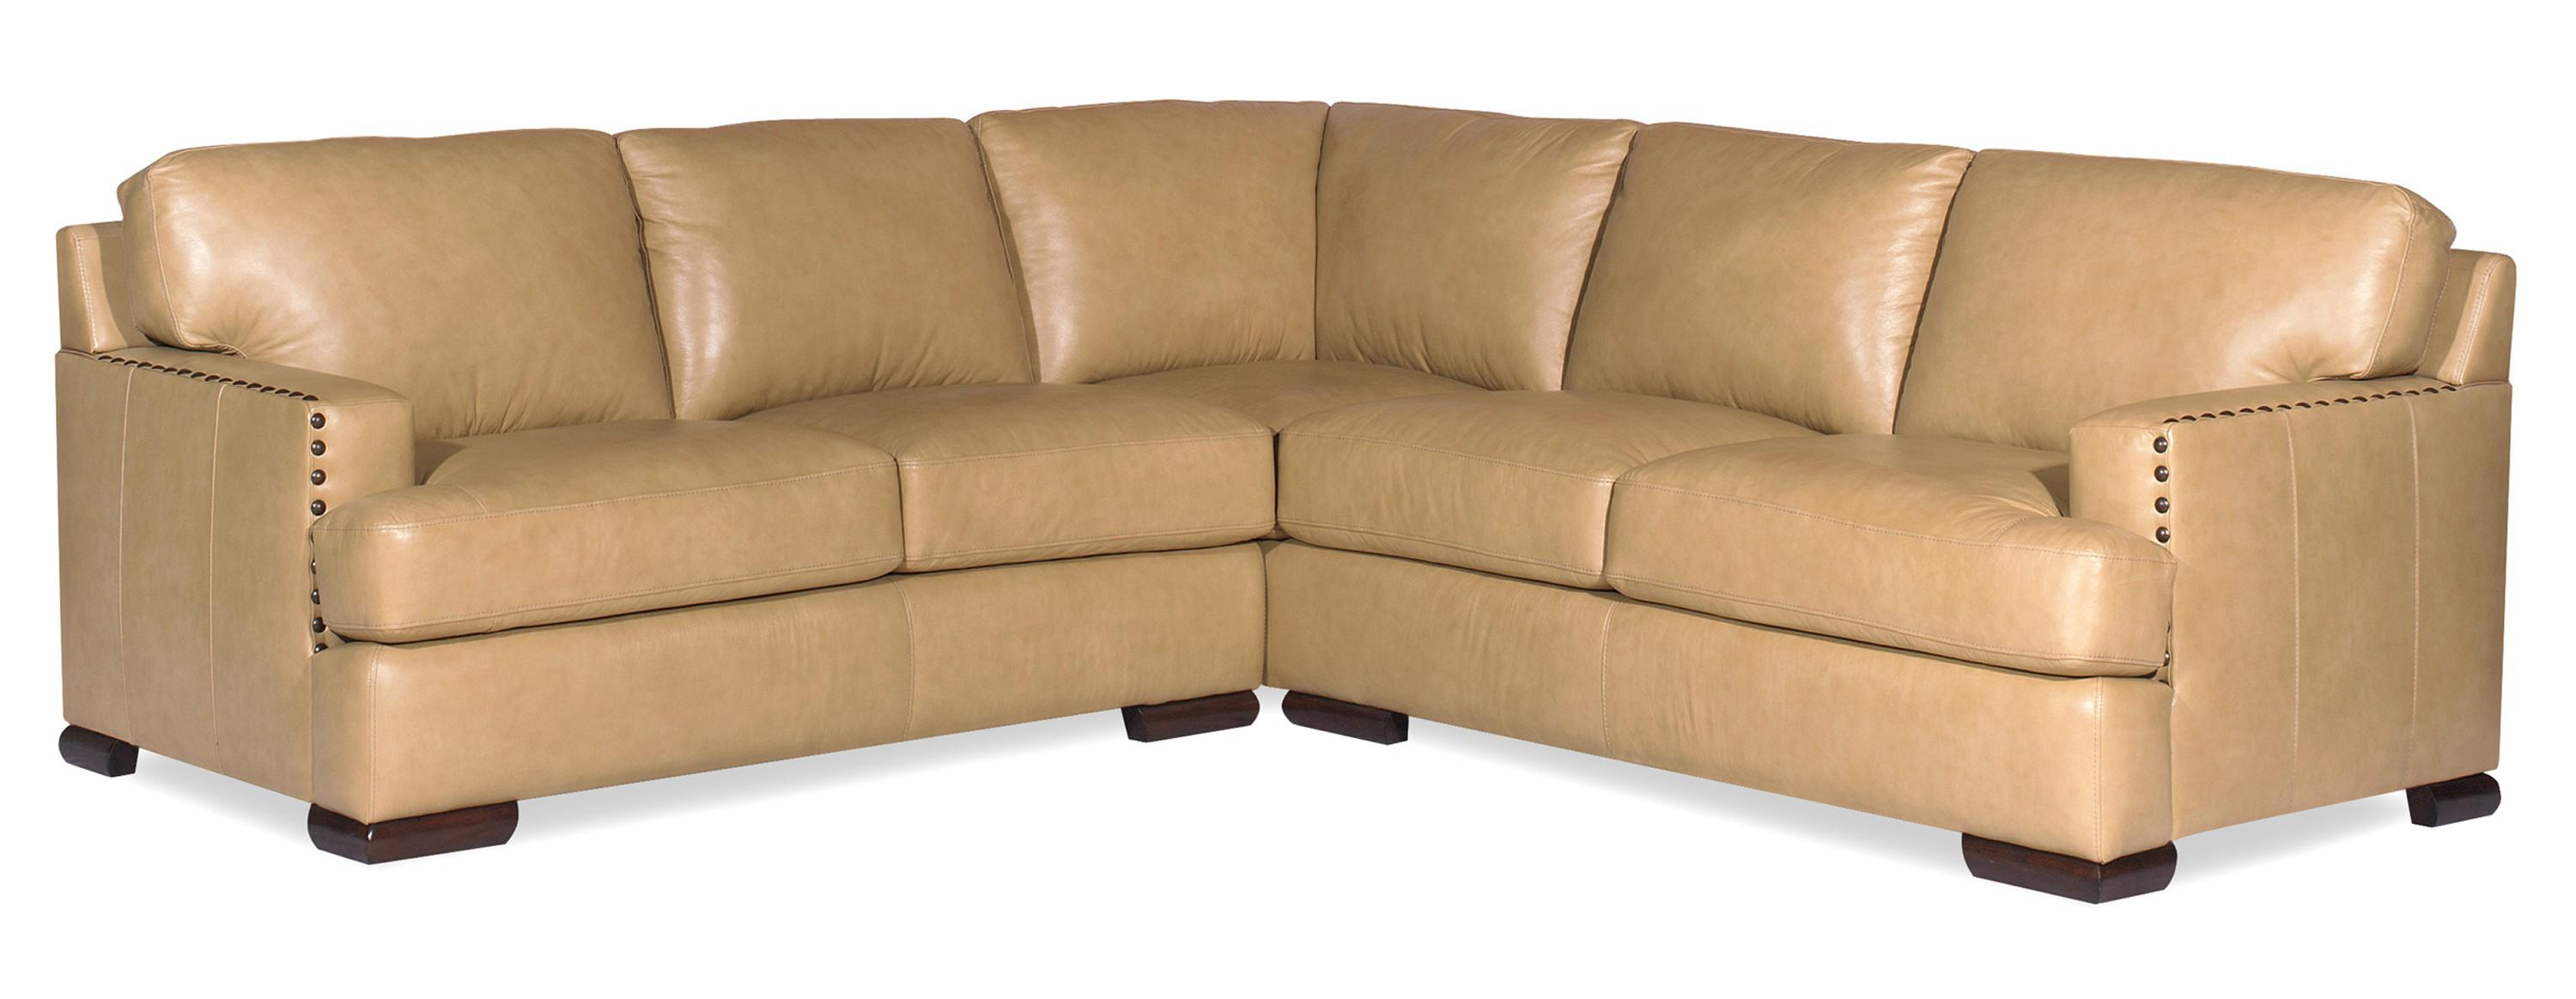 Craftmaster Allure Contemporary Two Piece Sectional Sofa with